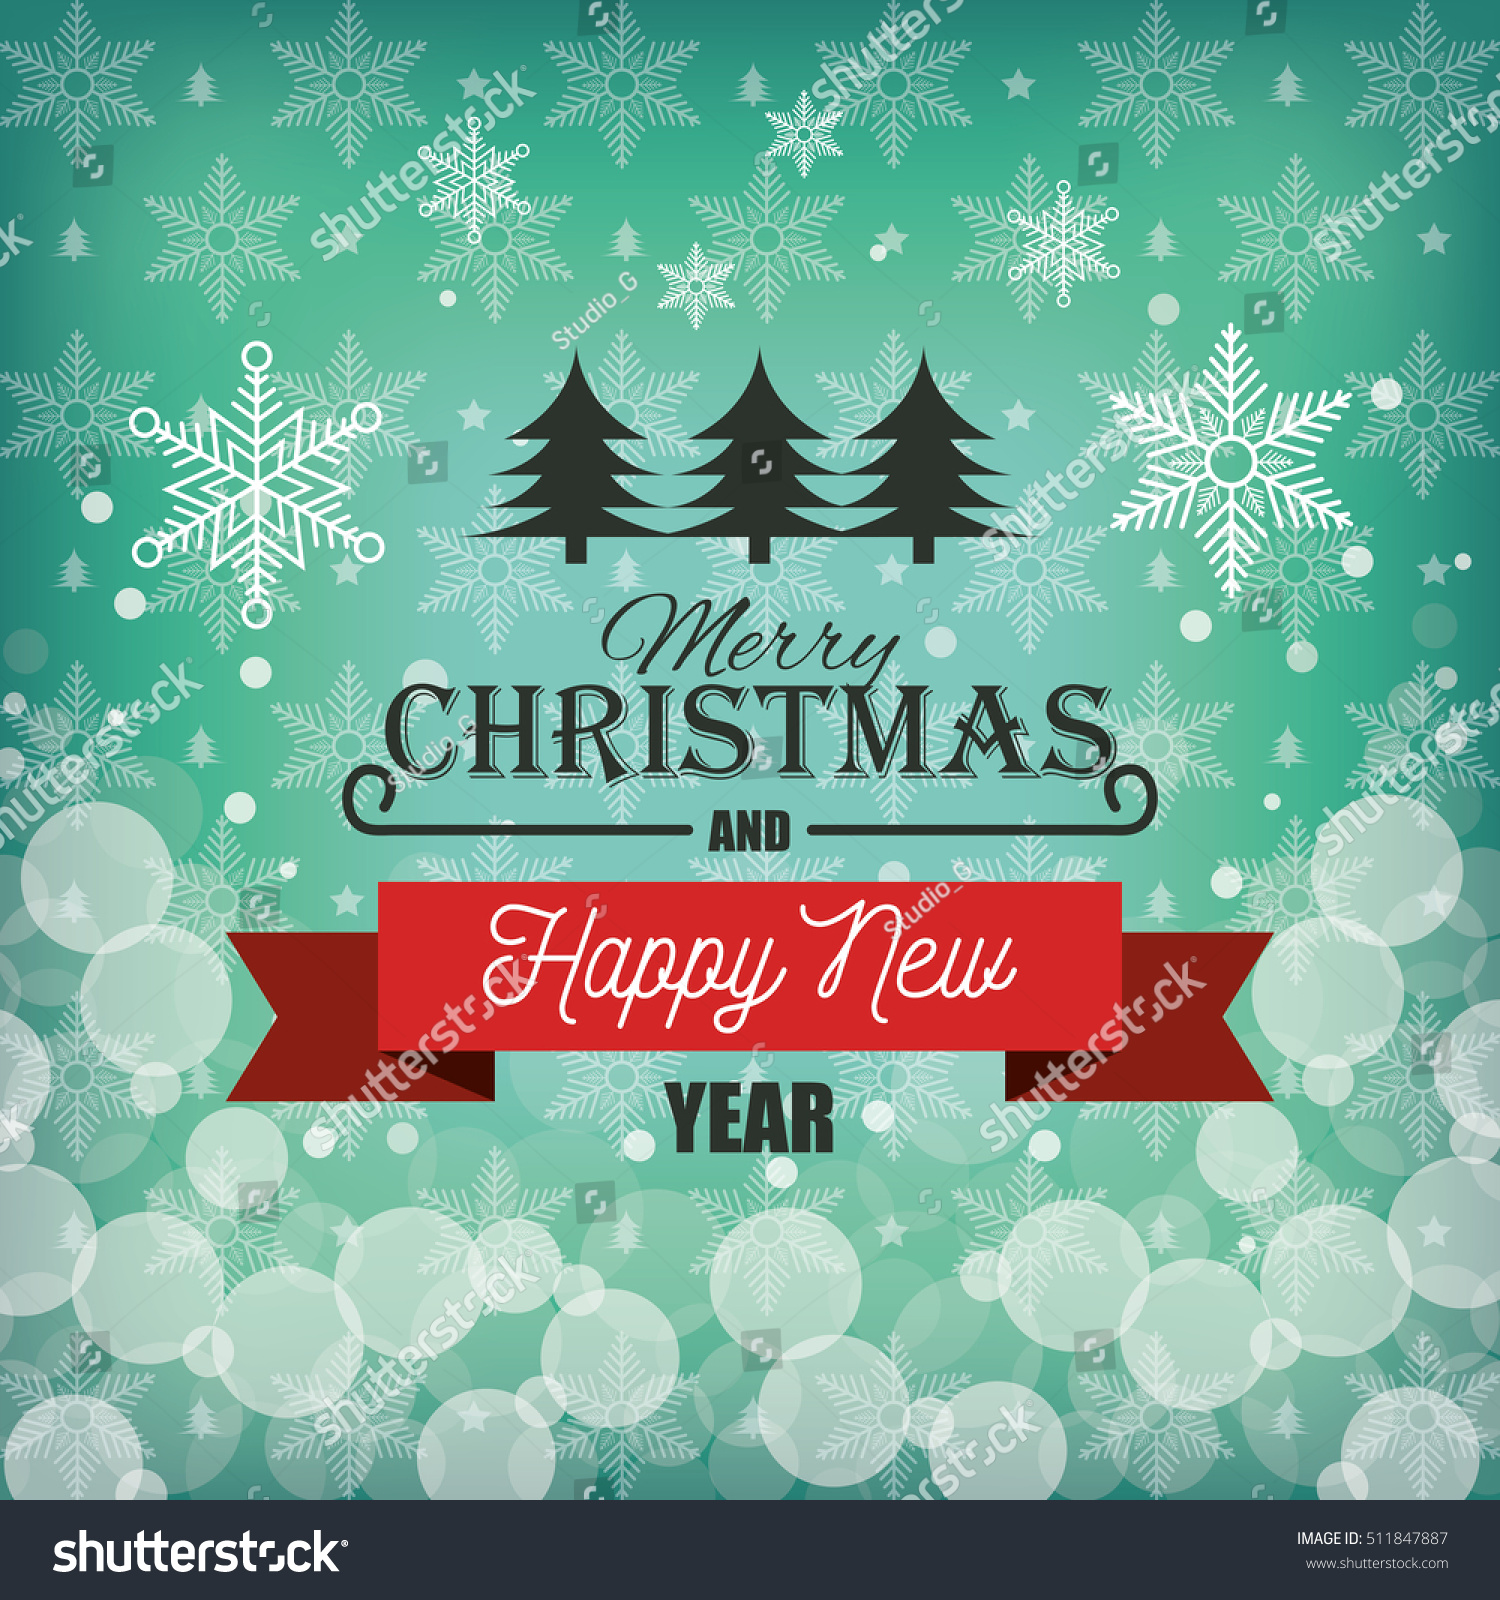 Happy Merry Christmas Card Stock Vector Royalty Free 511847887